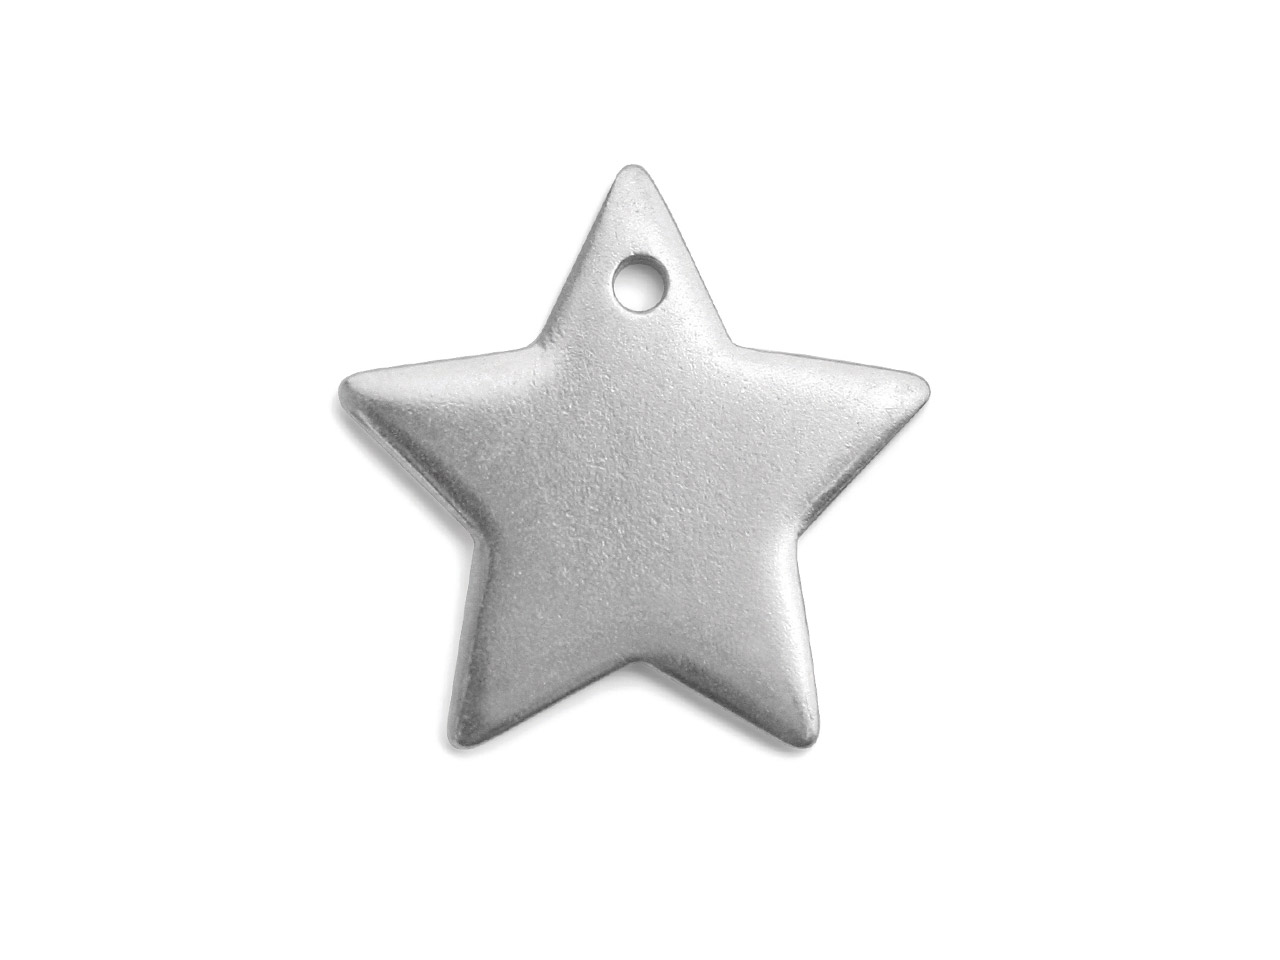 Impressart Pewter Star 25mm        Stamping Blank Pack of 2 Pierced   Hole